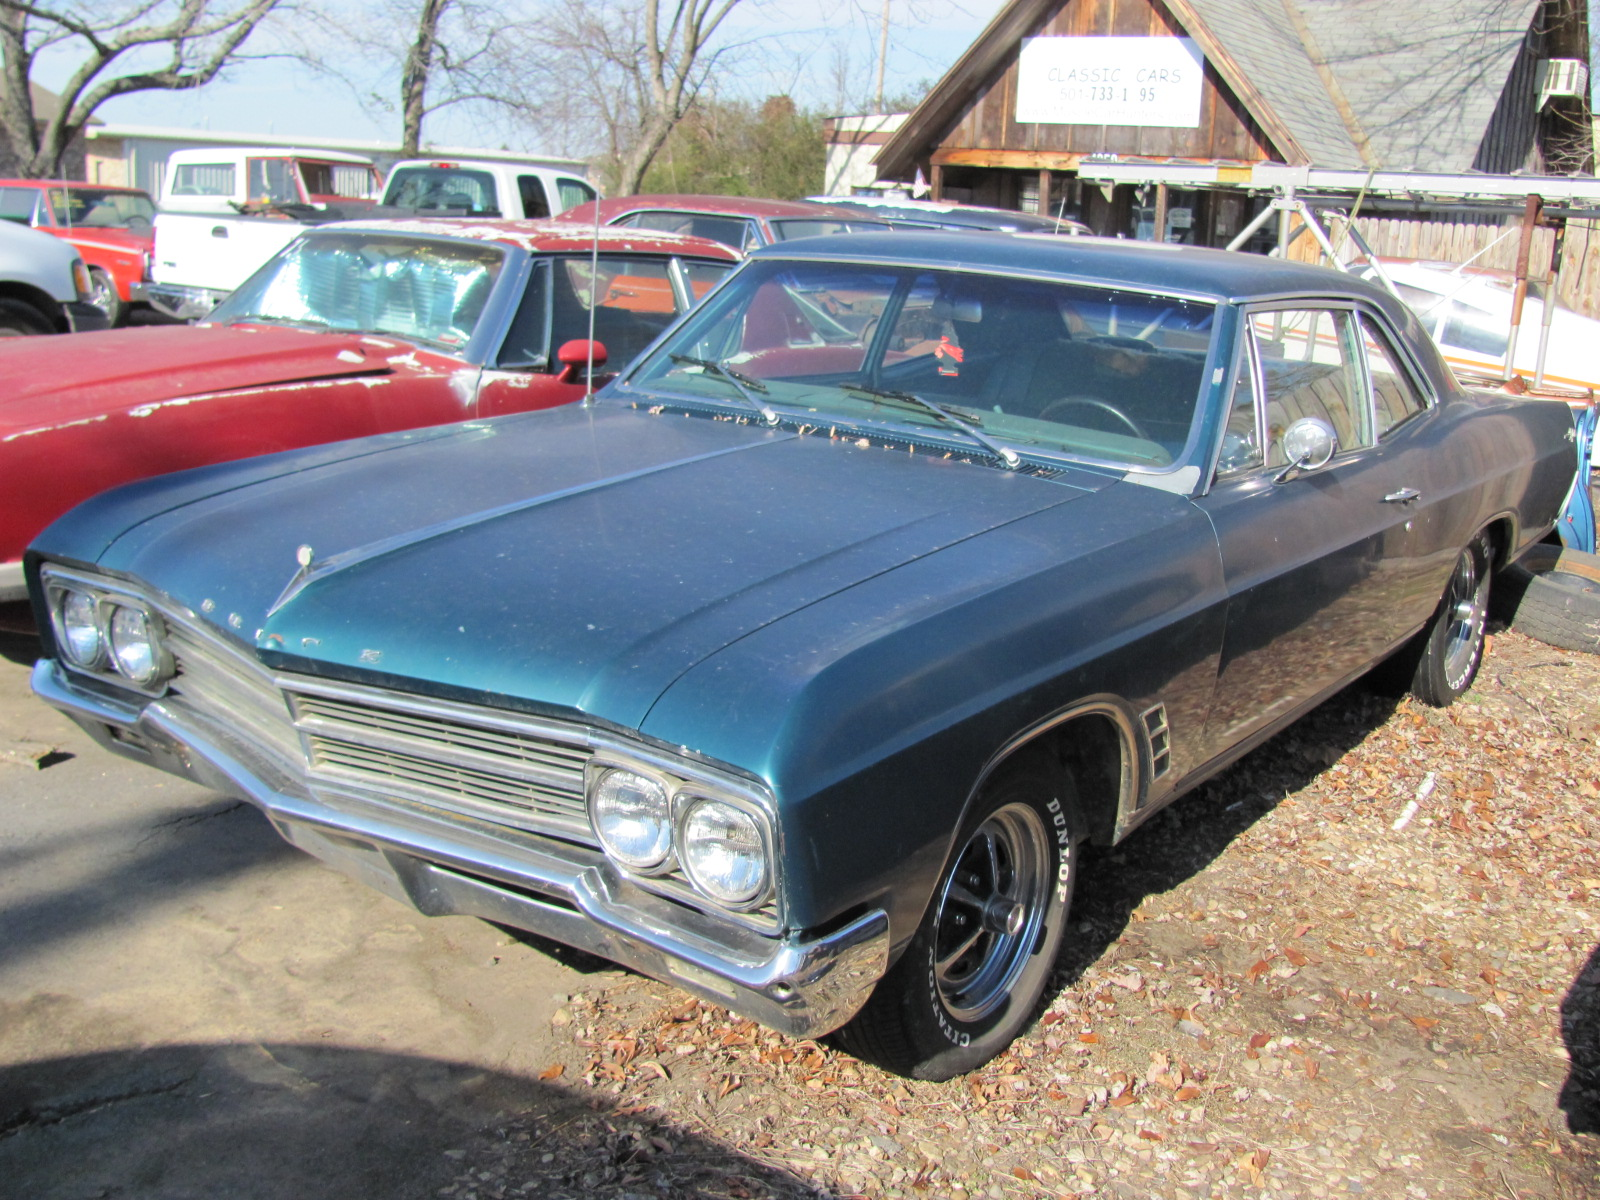 Oldsmobile Muscle Cars For Sale & Buick Classic Antique Car